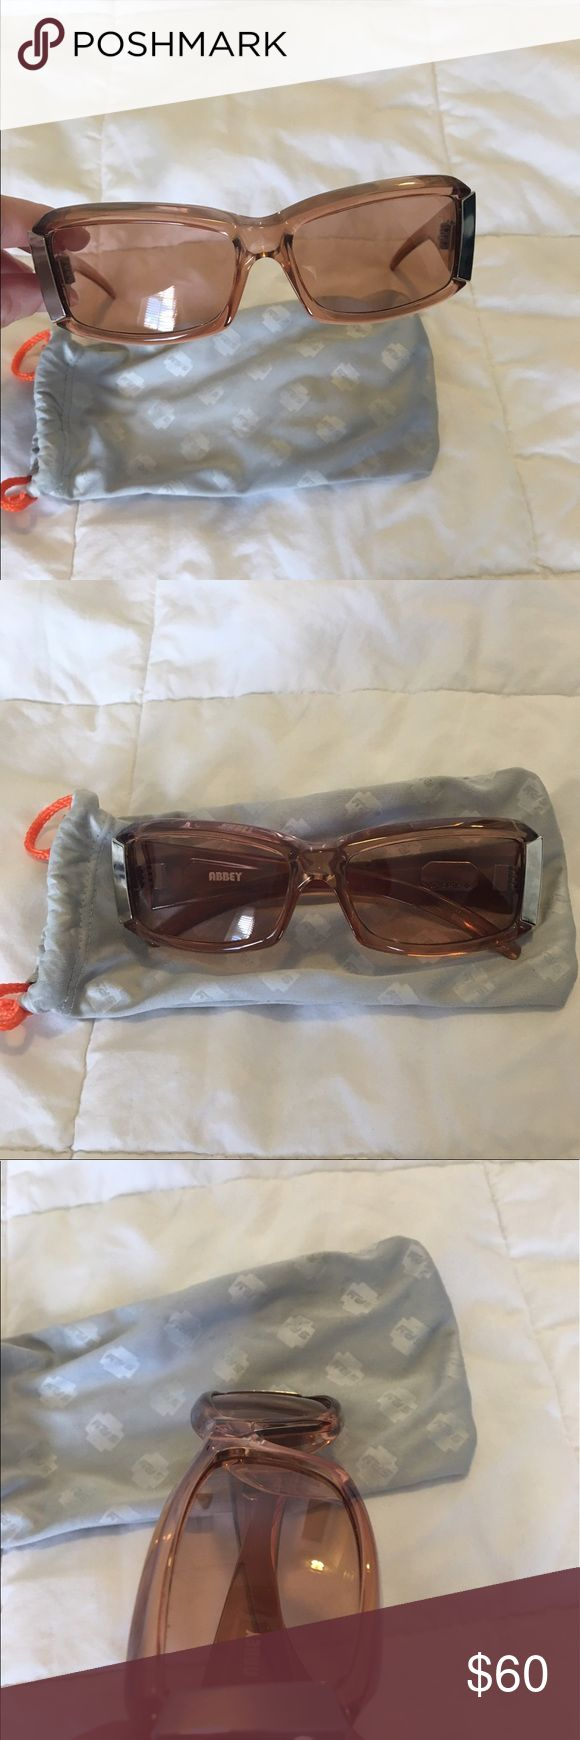 SPY Sunglasses These are the Abbey Spy sunglasses.  They've been worn once and come with a dust bag.  Dust bag has some marks on it. SPY Accessories Glasses